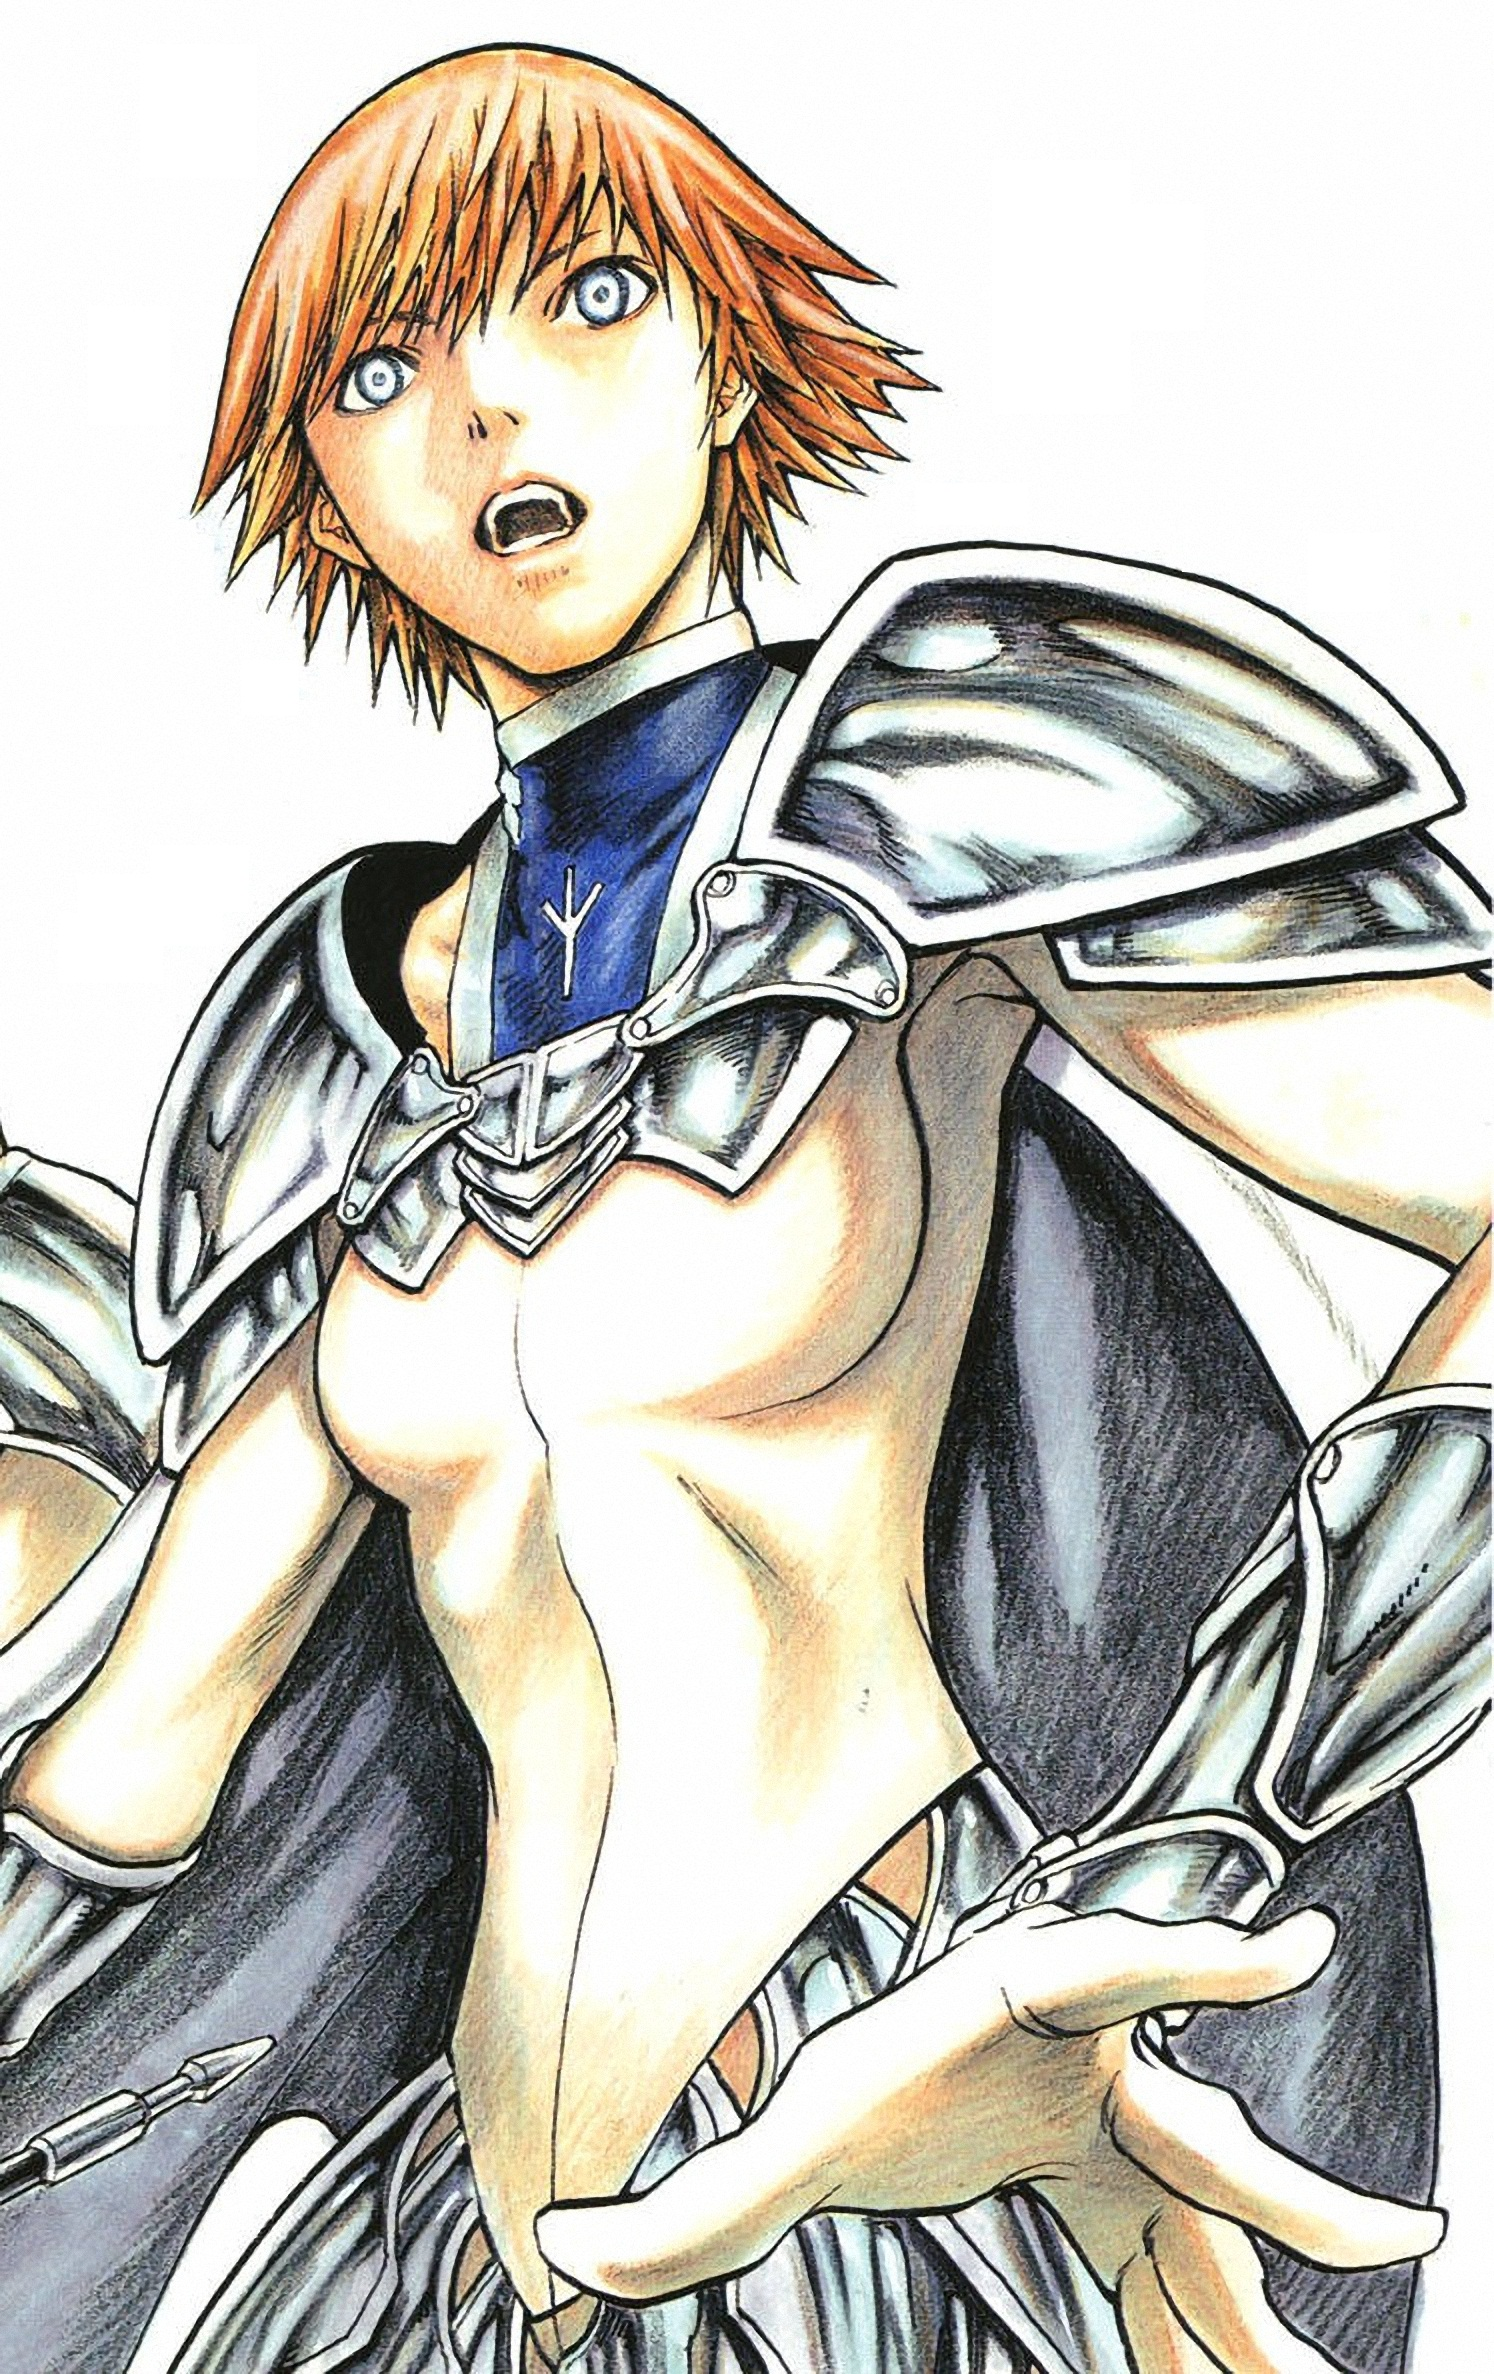 http://images3.wikia.nocookie.net/__cb20111127022819/claymore/es/images/0/03/Clarice_3.jpg